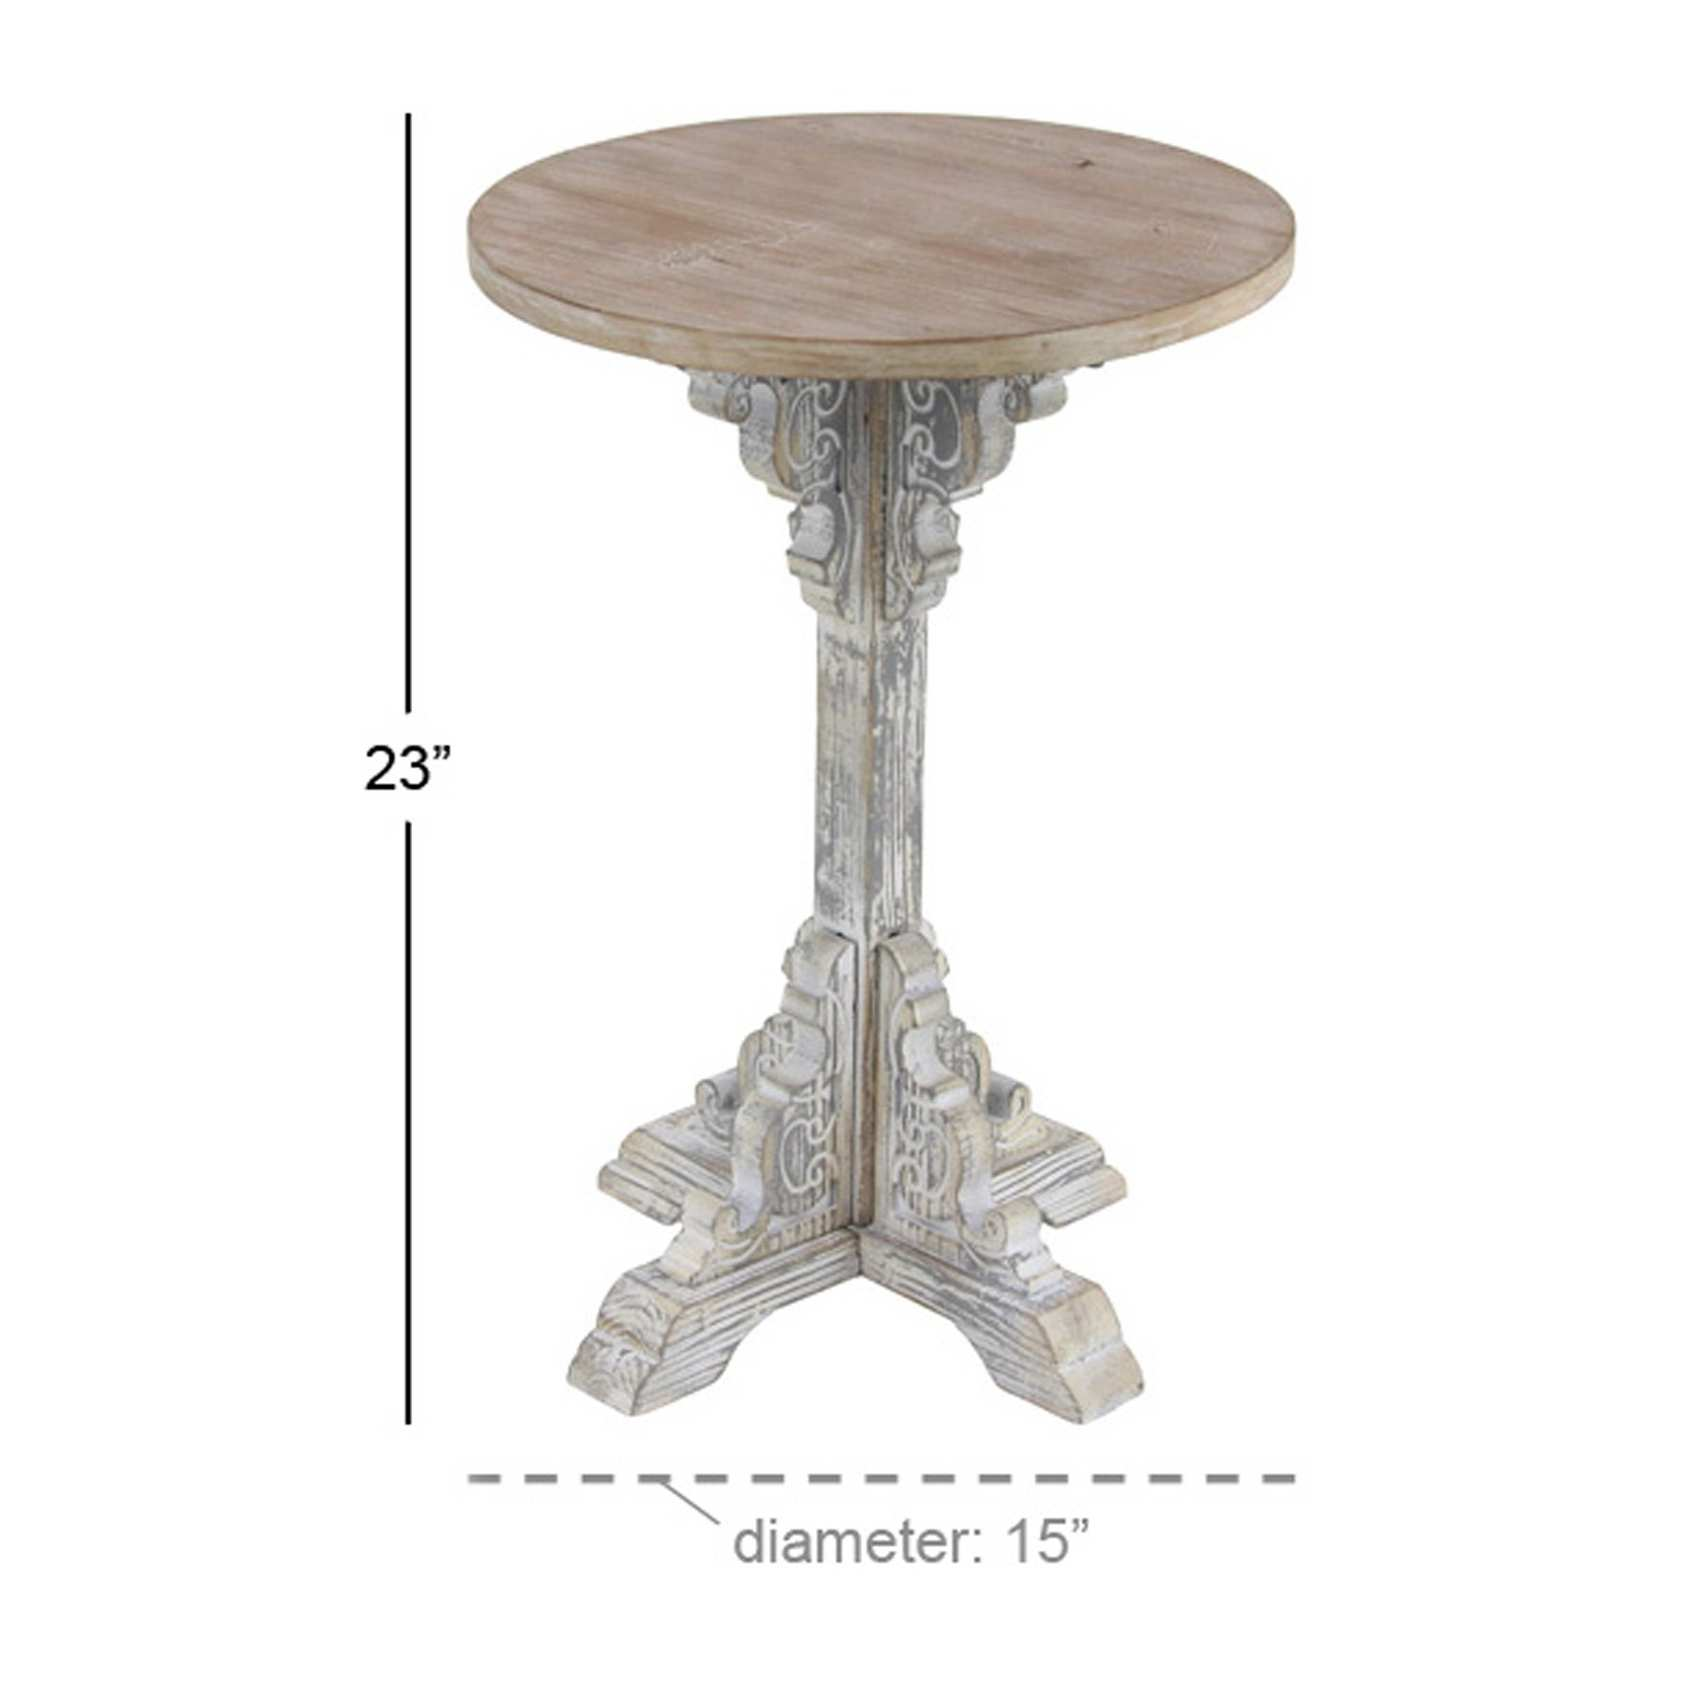 traditional inch round wood accent table gray wooden studio free shipping today living room sofa tables cover threshold side cherry bedroom furniture white rectangle tablecloth